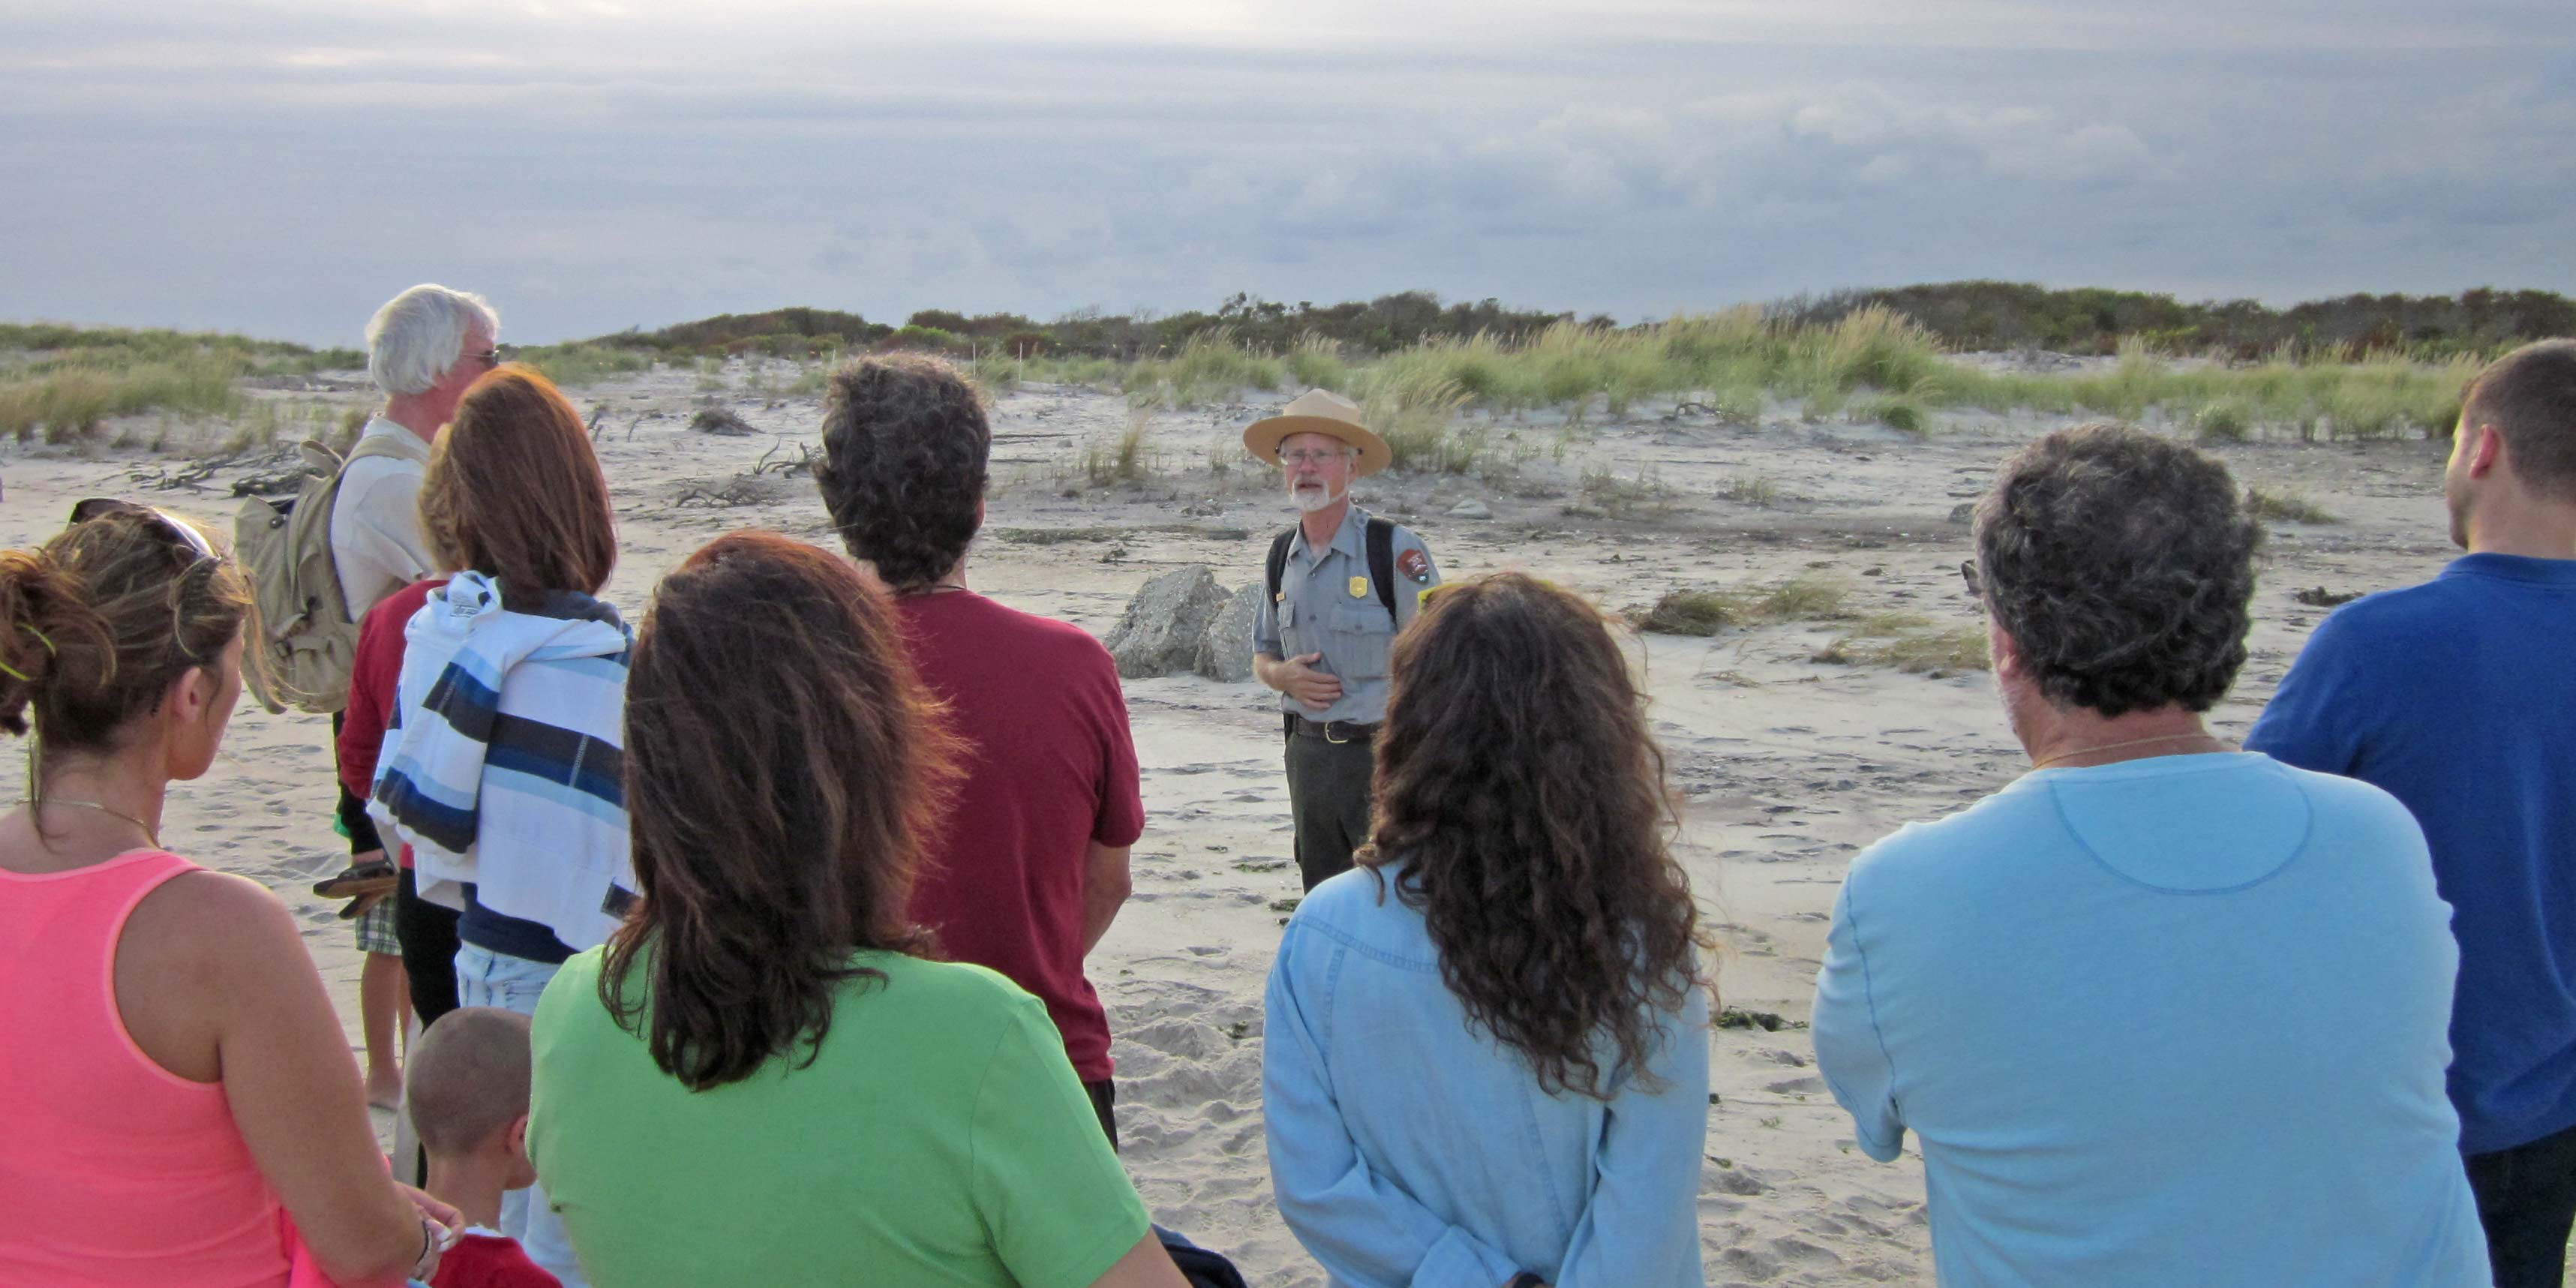 A park ranger leads a group on a hike to the breach at Old Inlet